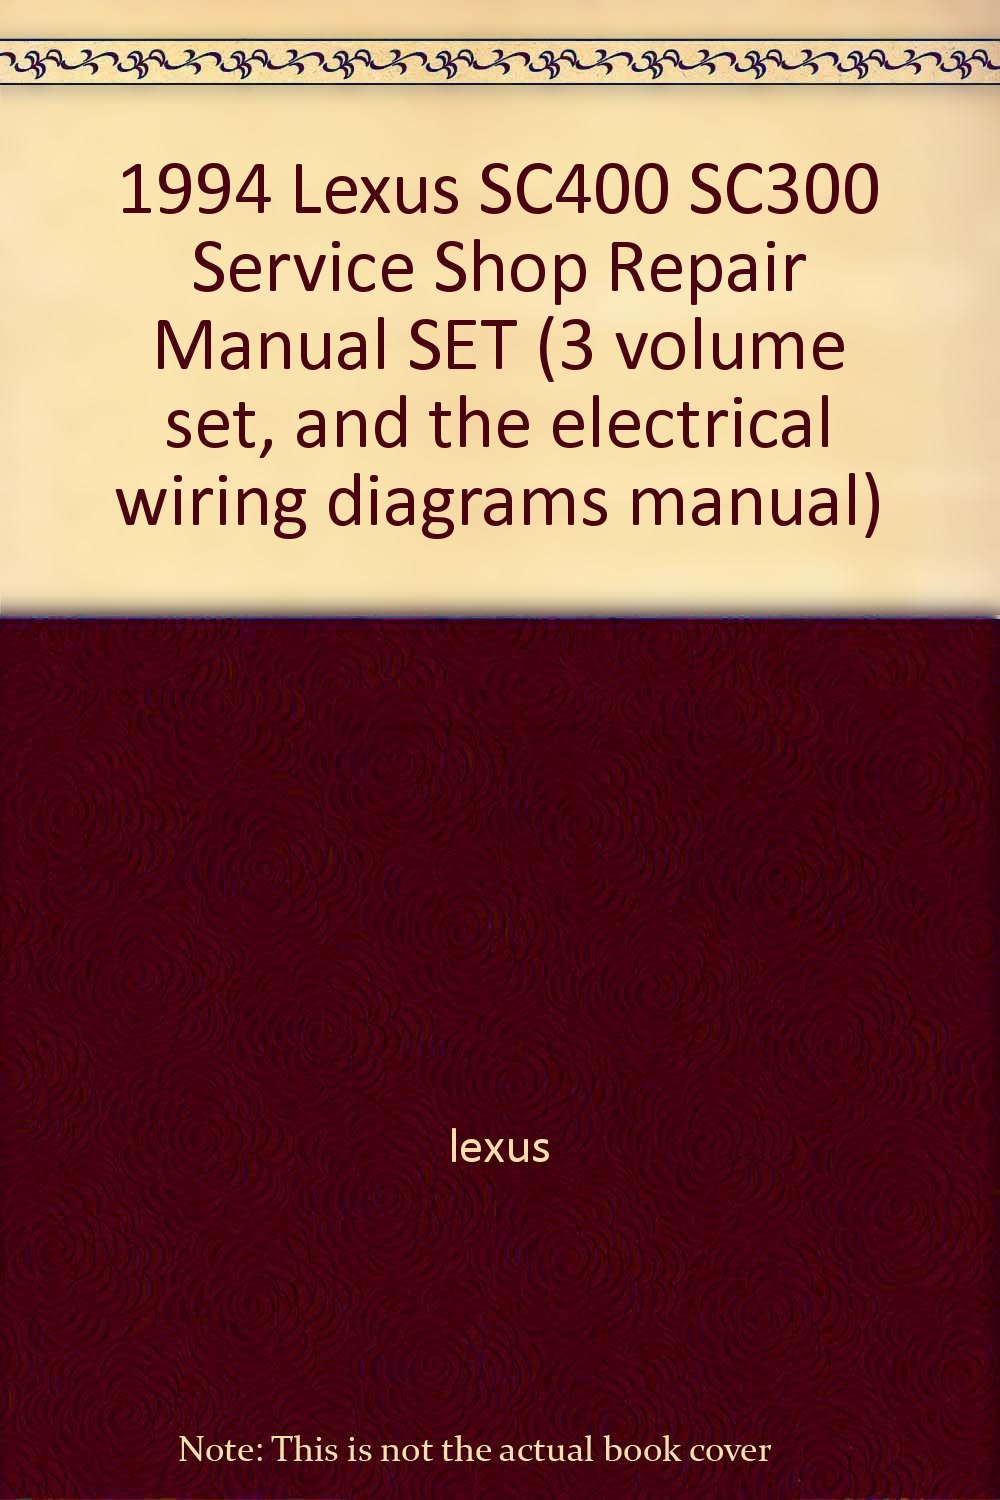 1994 Lexus SC400 SC300 Service Shop Repair Manual SET (3 volume set, and  the electrical wiring diagrams manual): lexus: Amazon.com: Books